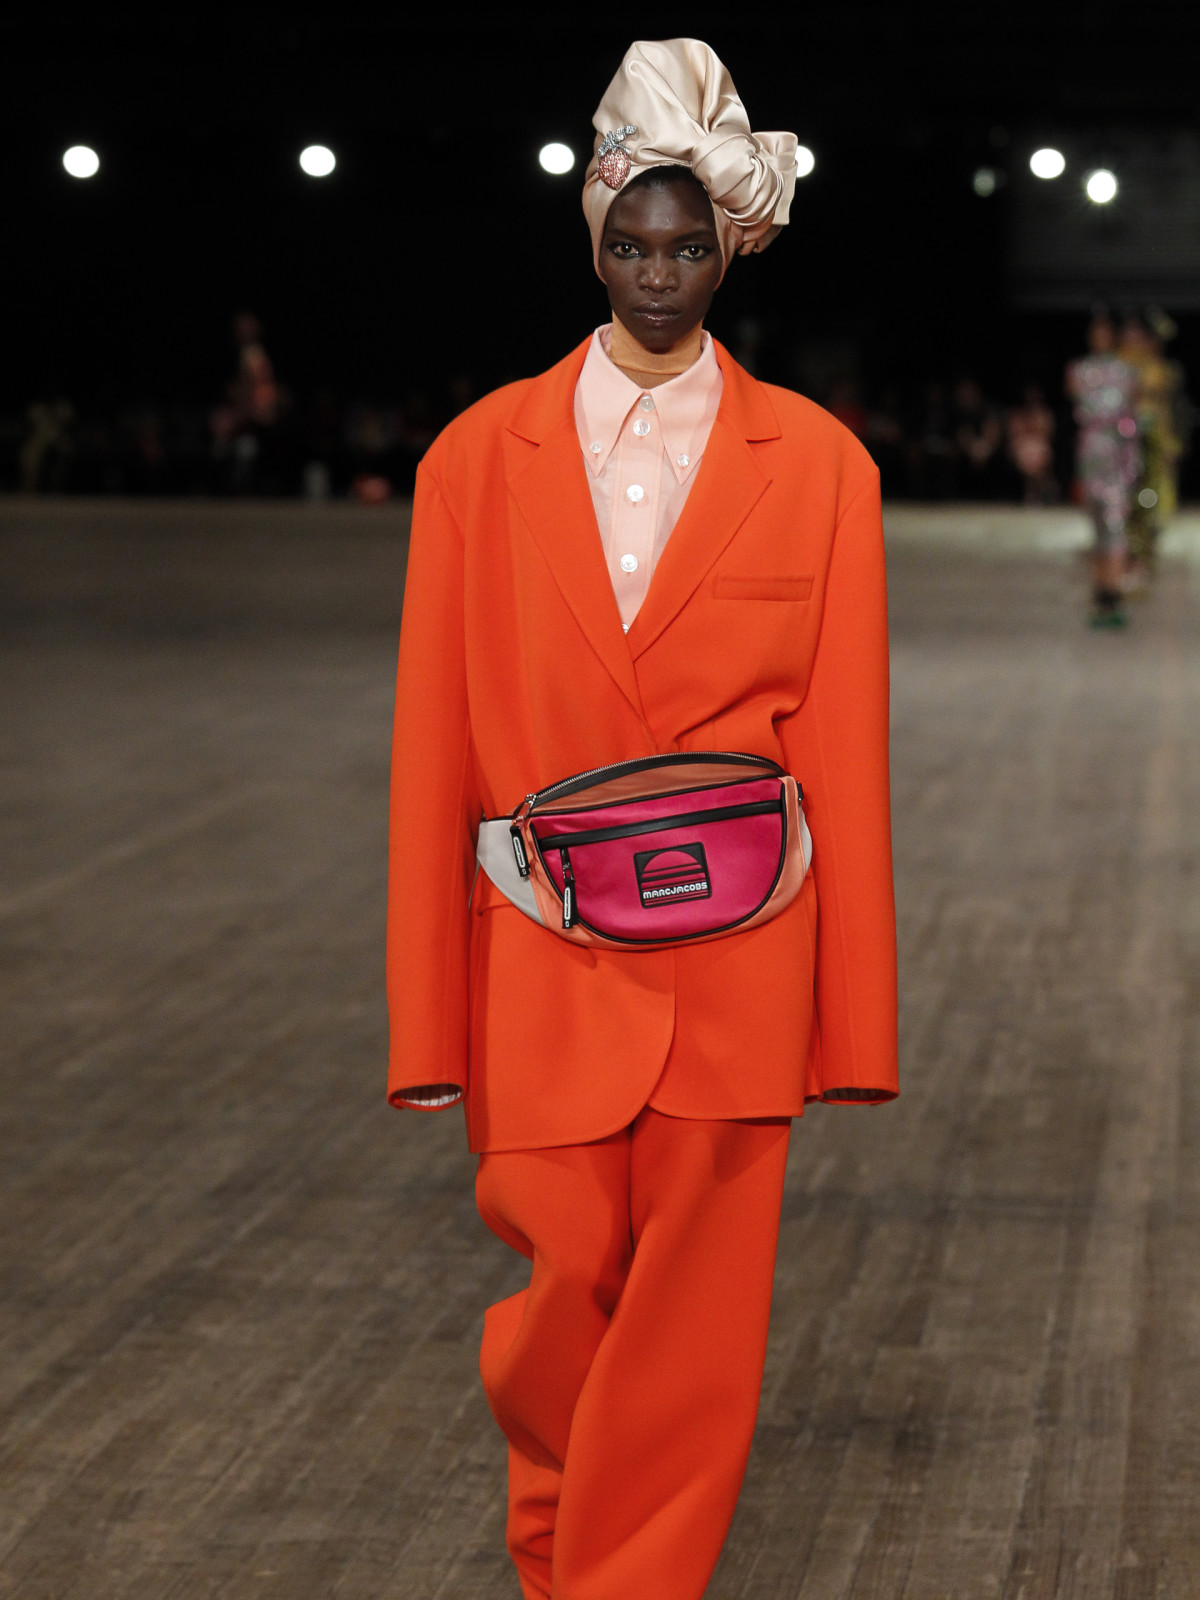 422974b16d Marc Jacobs lets his designs do the talking, courts controversy ...